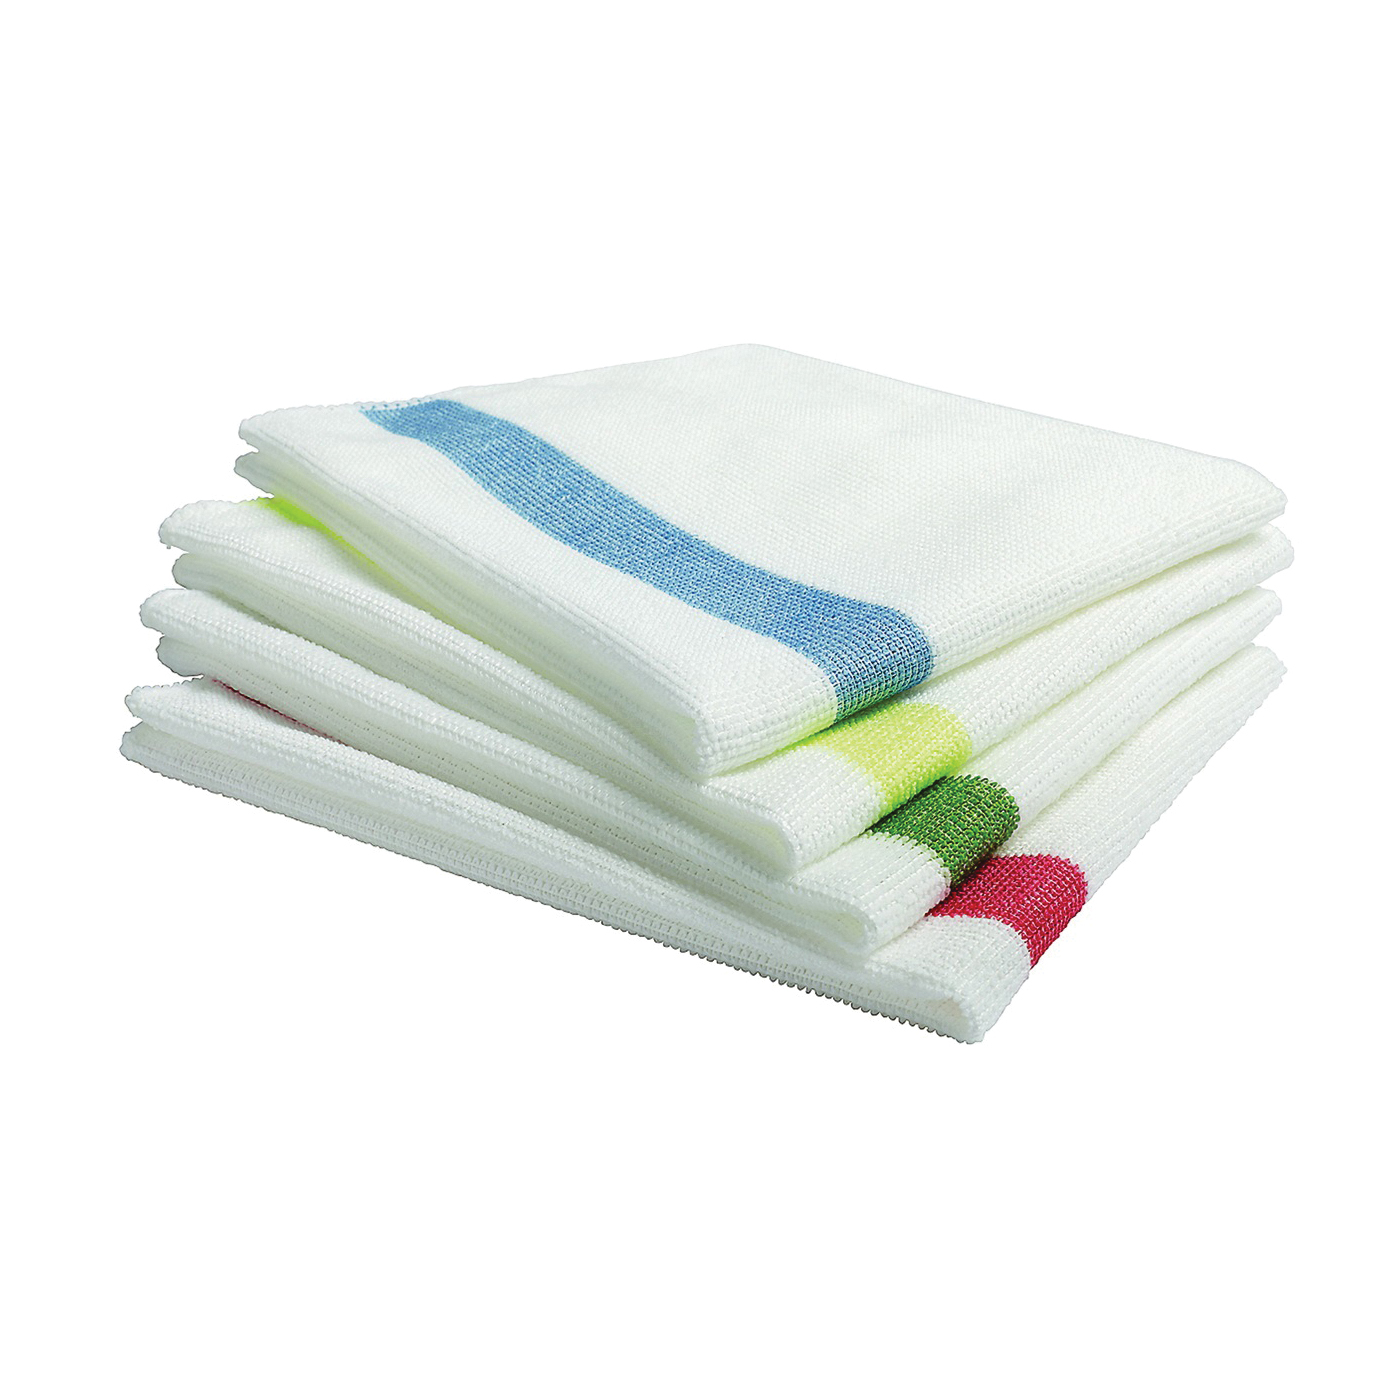 Picture of Rubbermaid 1824723 Wiping Cloth, 16 in L, 19 in W, Microfiber Cloth, 4